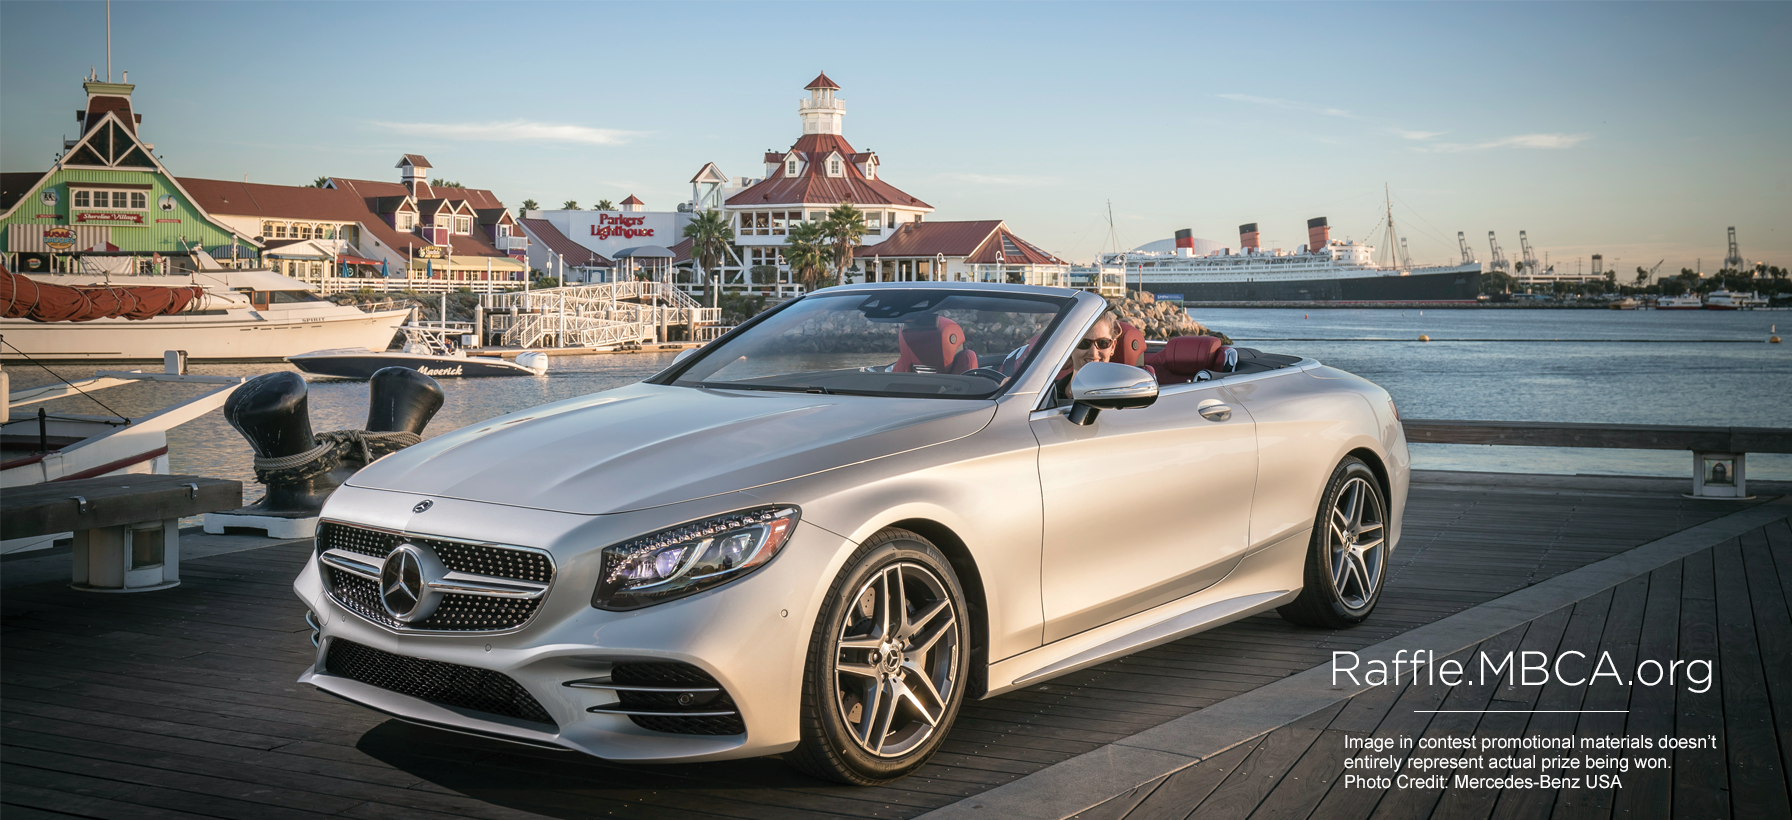 Up To Twice A Year, The Mercedes Benz Club Of America Conducts A Raffle For  Its Members. Members Purchase Tickets For A Chance To Win Great Prizes, ...